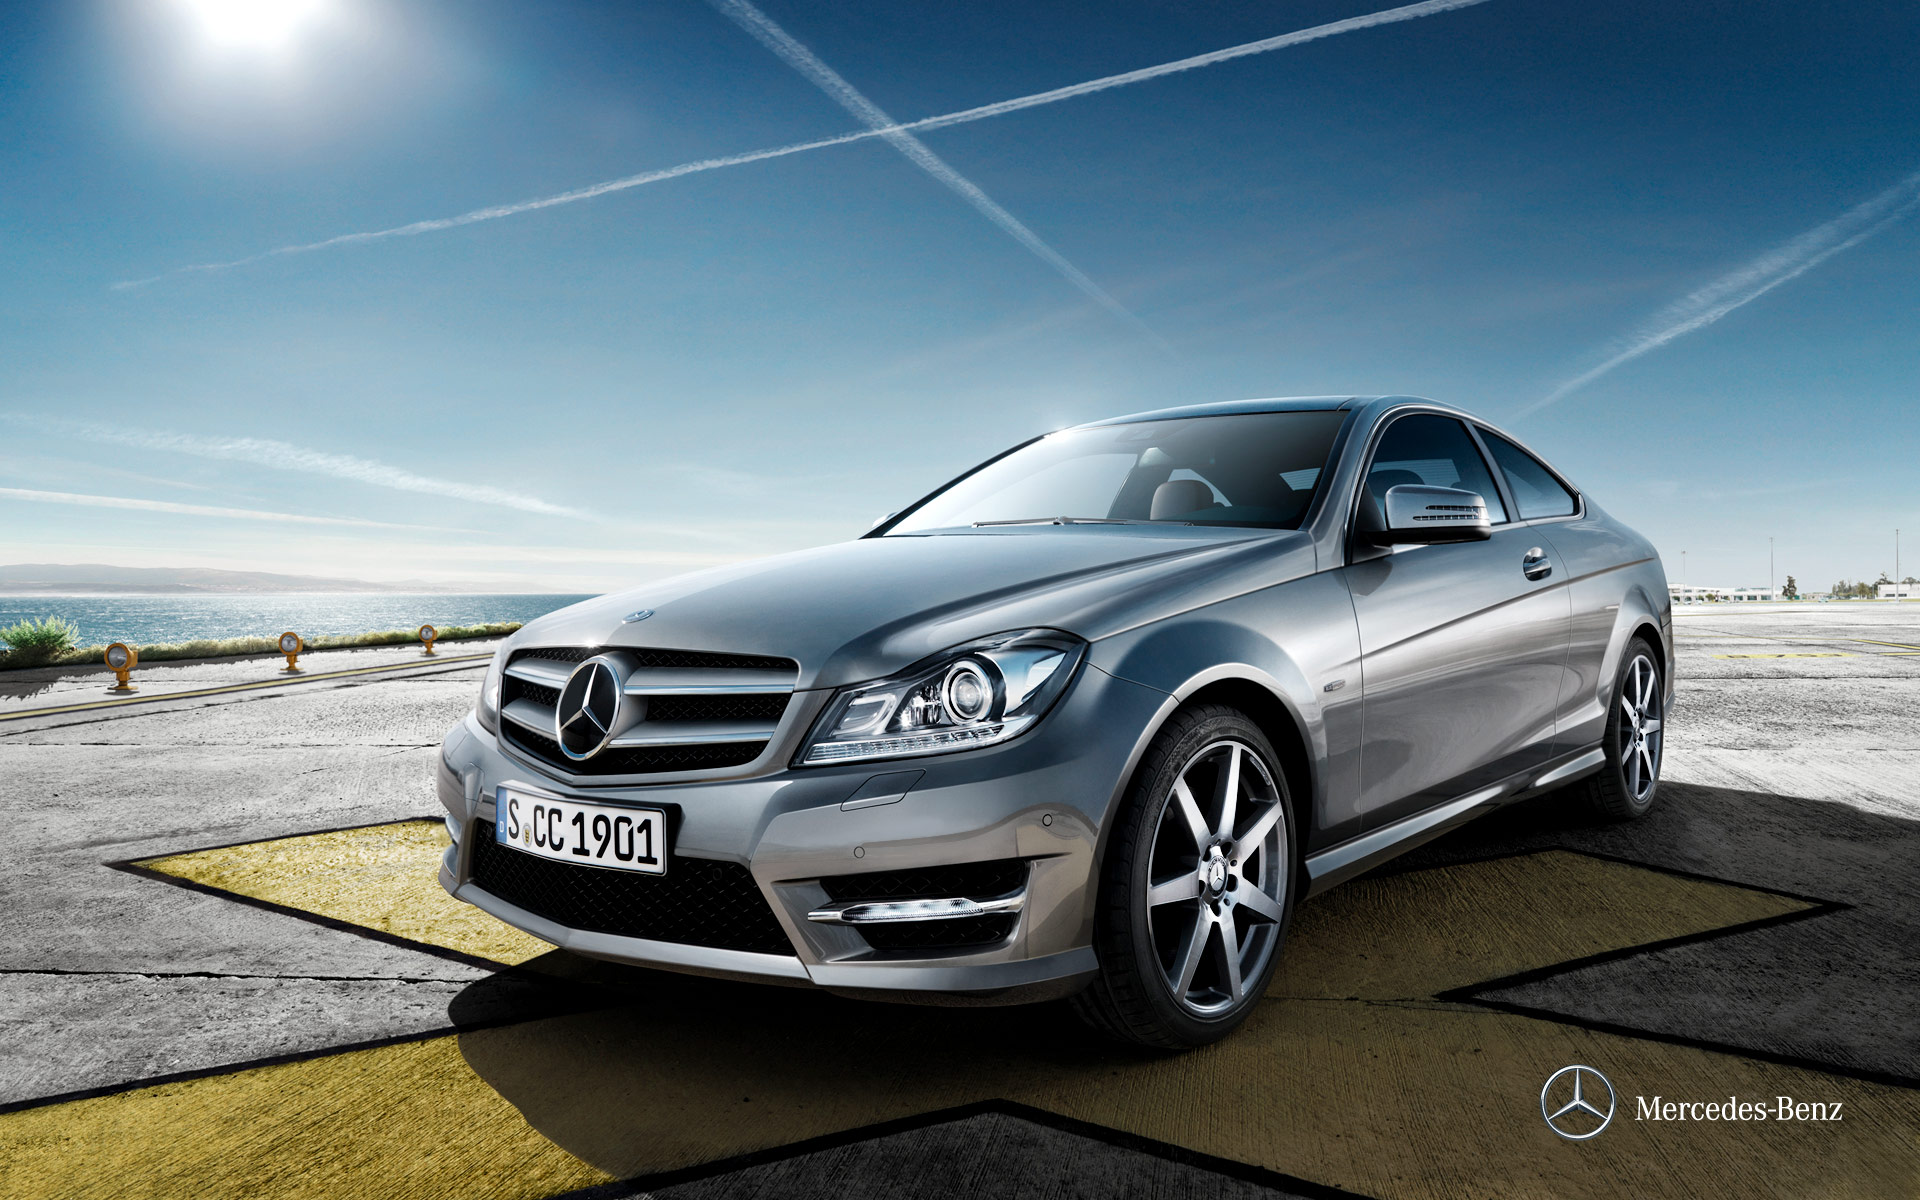 Mercedes benz c class 2012 c 180 in uae new car prices for Mercedes benz c class coupe 2012